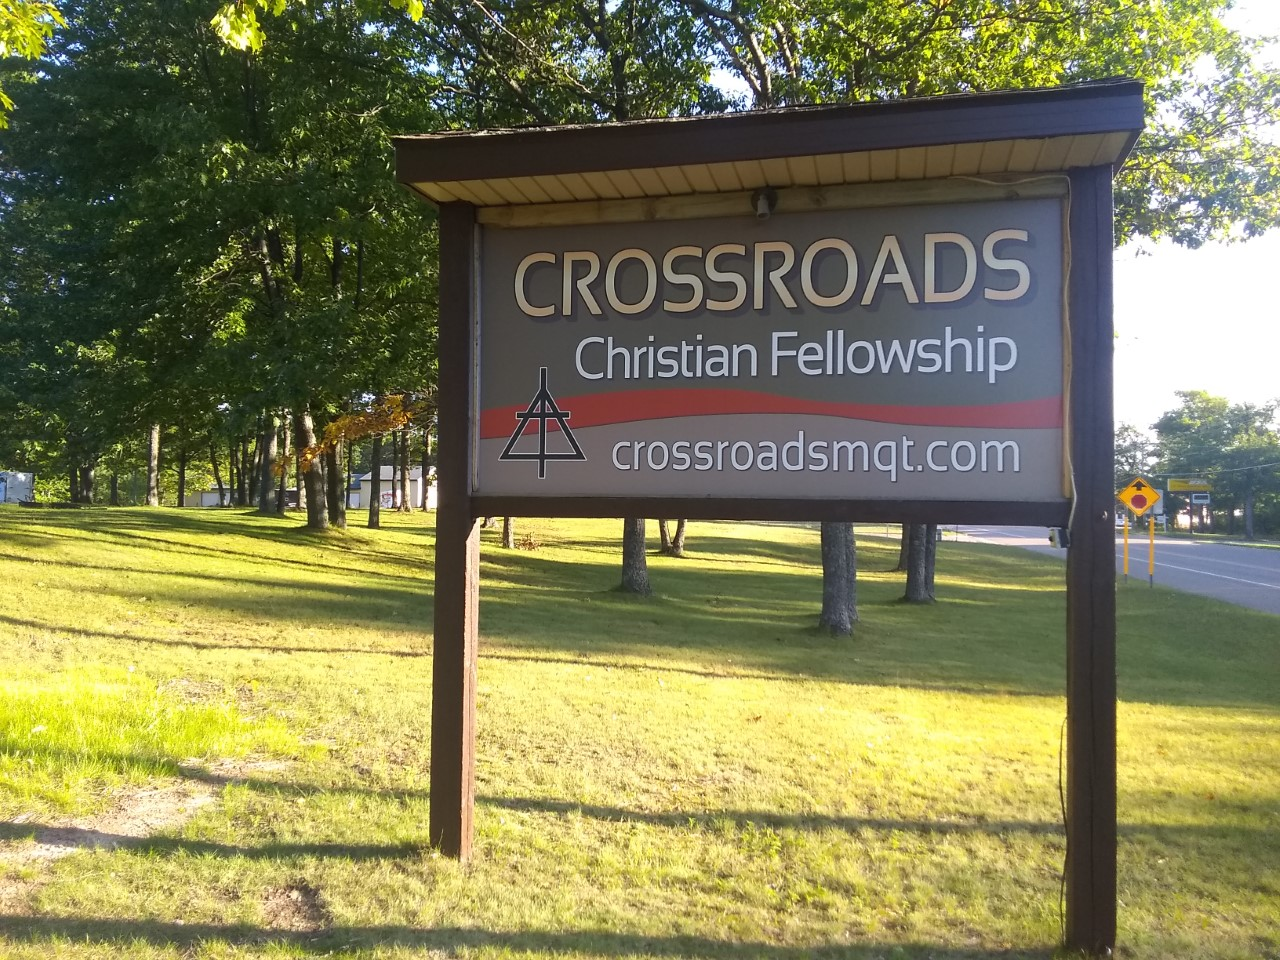 crossroads website pic 2